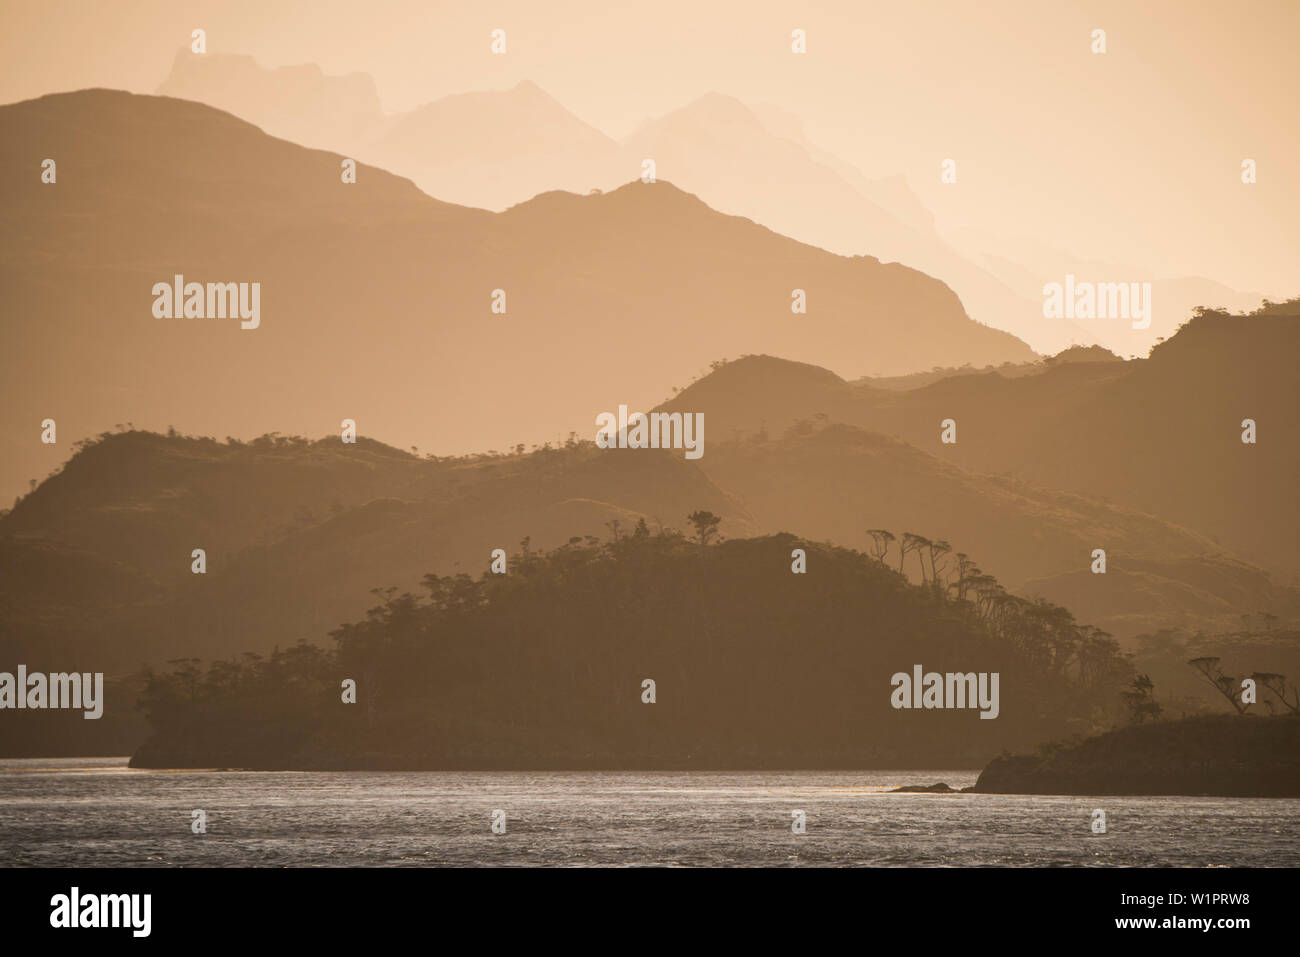 Late-afternoon sun casts a red-orange glow over hills and mountains stacked up in the distance, Strait of Magellan, Magallanes y de la Antartica Chile - Stock Image